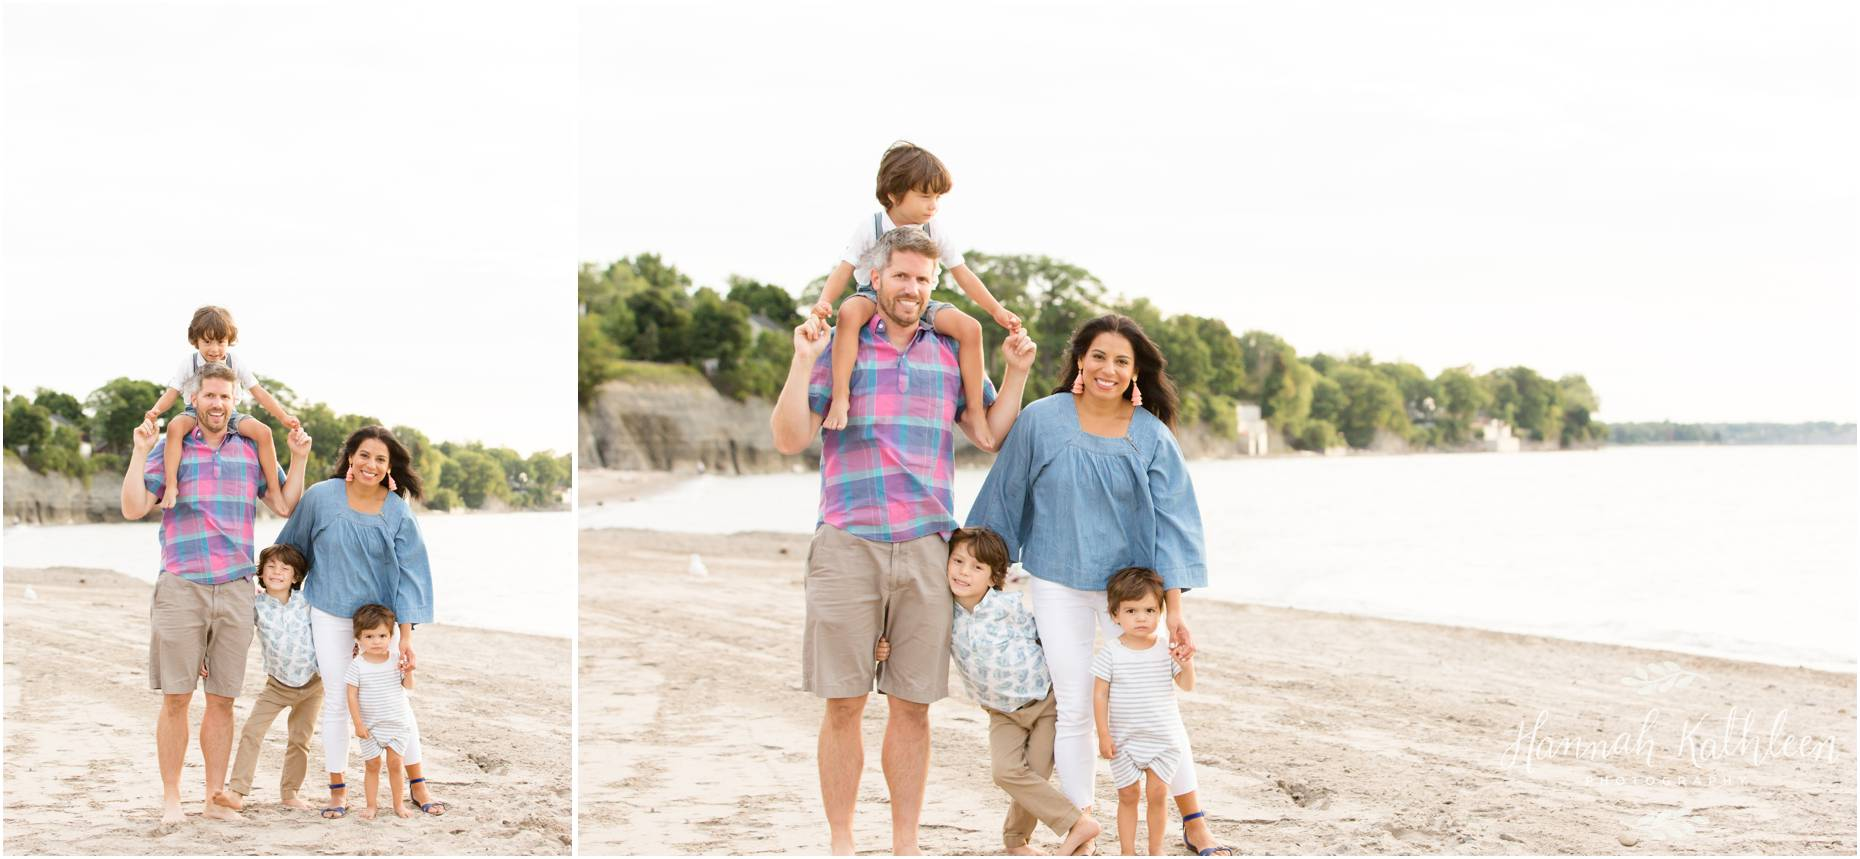 Mills_Hamburg_Beach_Family_Photography_Buffalo